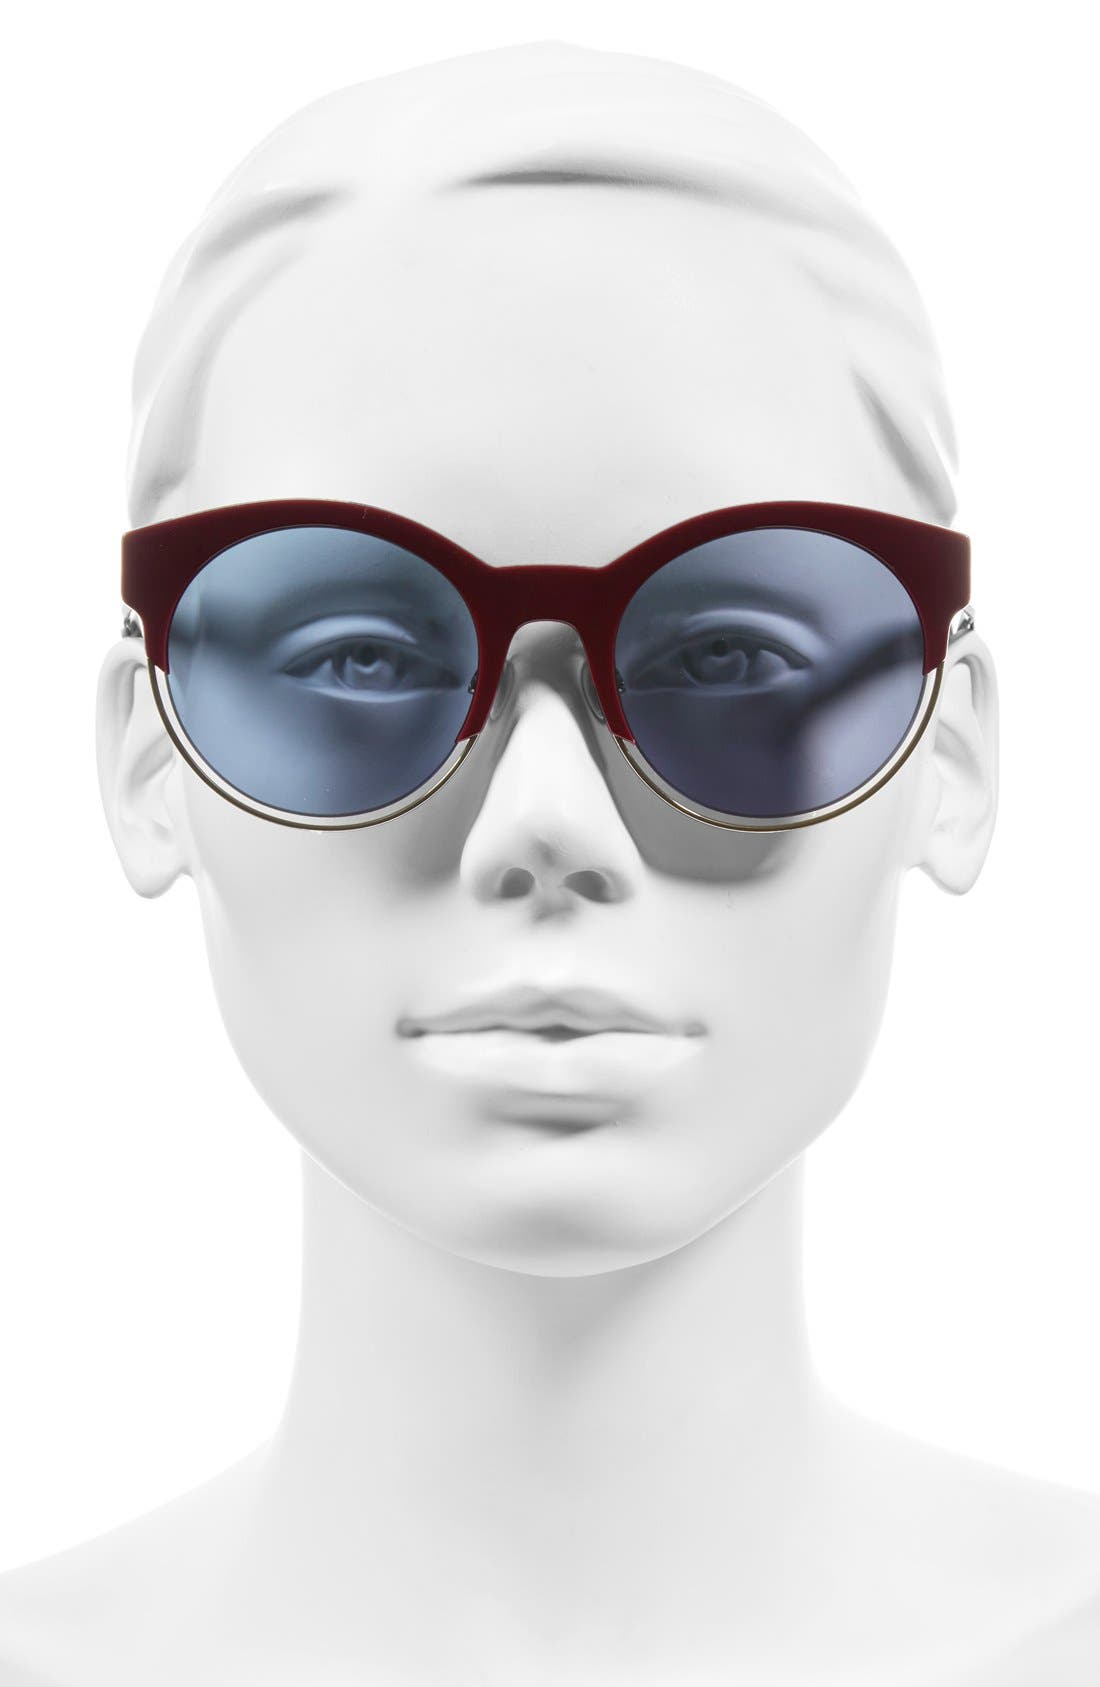 Siderall 1 53mm Round Sunglasses,                             Alternate thumbnail 16, color,